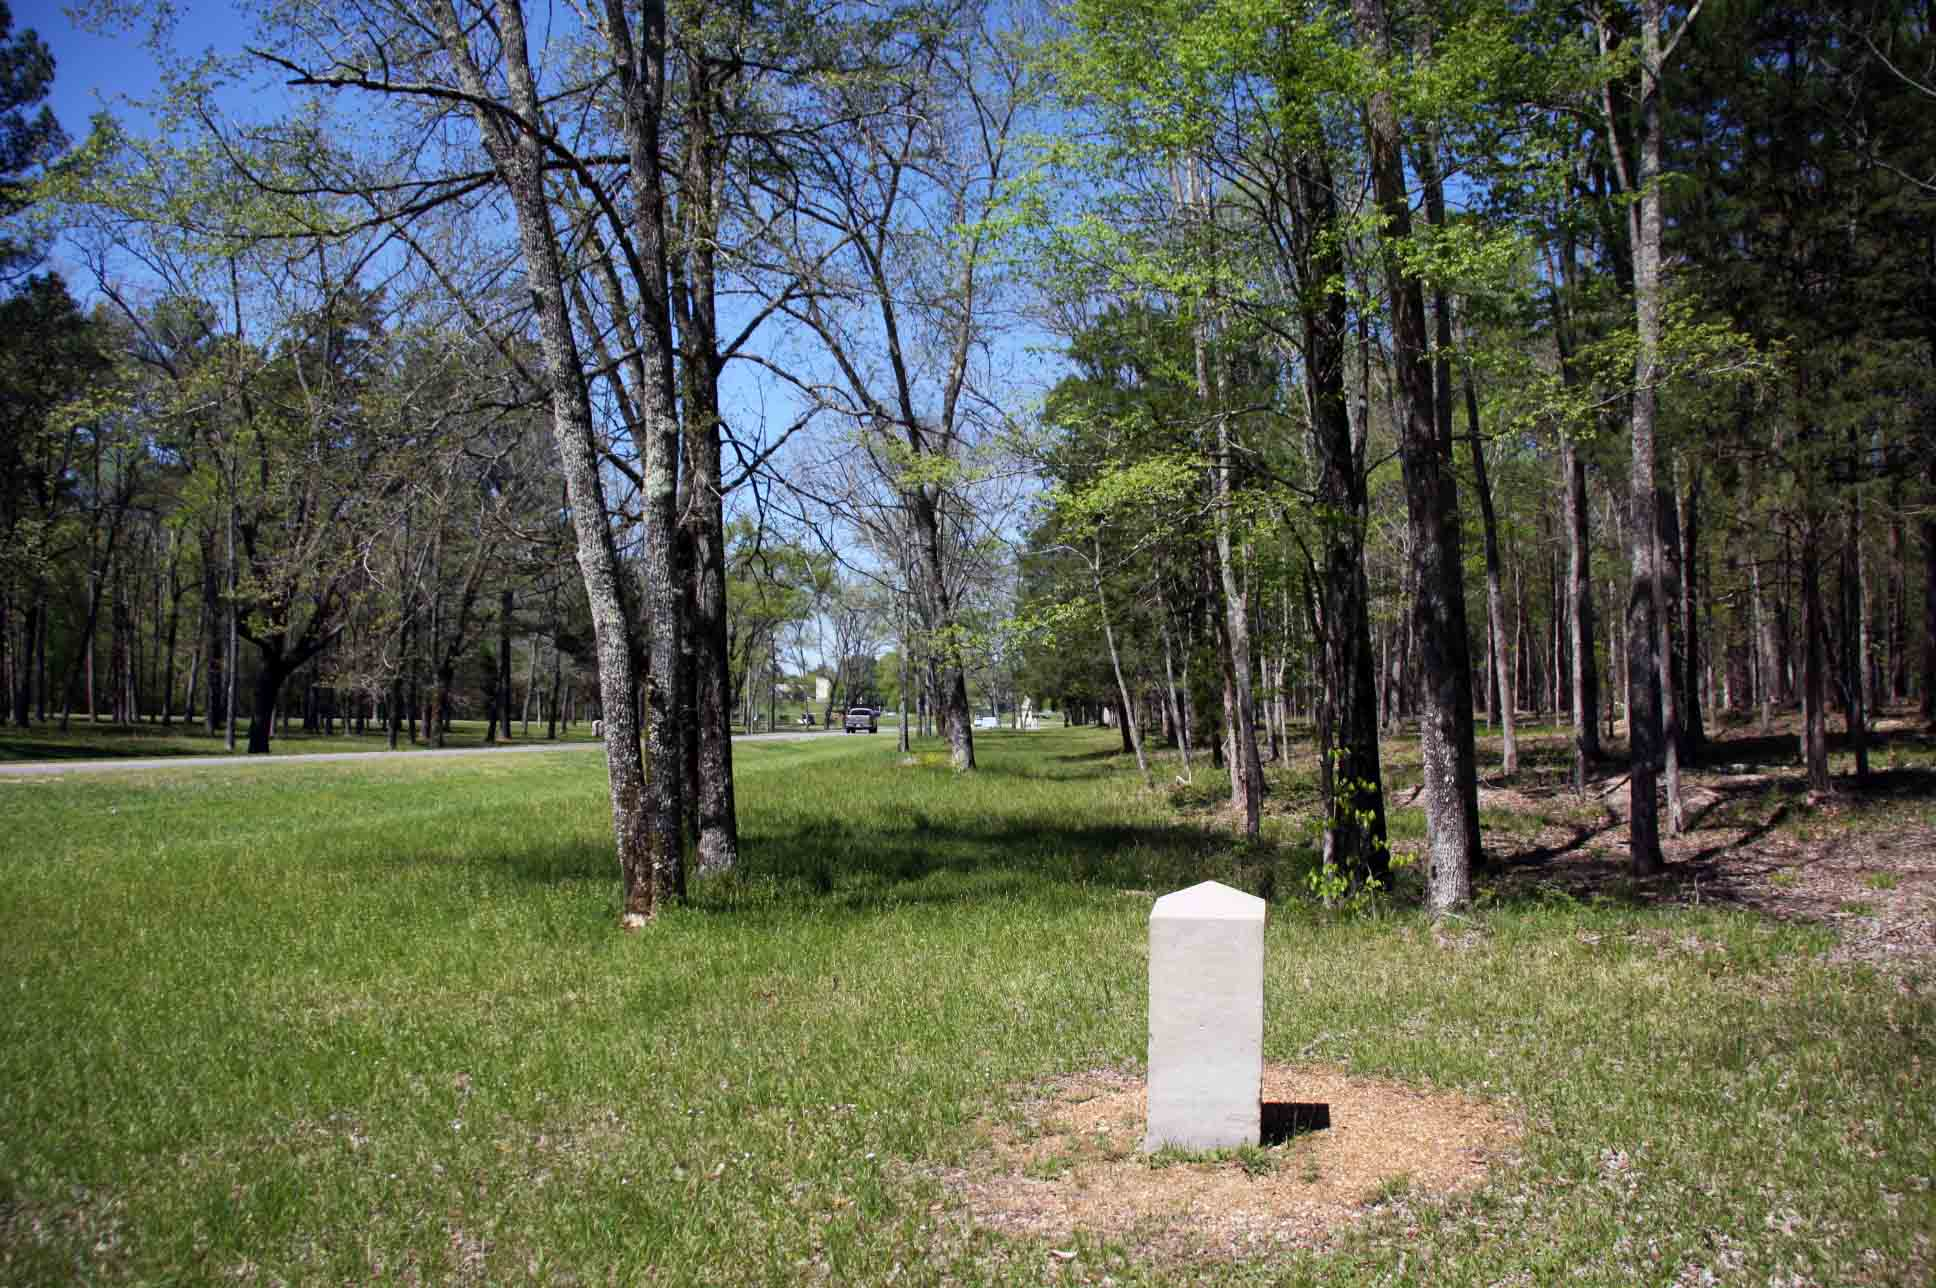 35th Ohio Infantry Regiment Marker, click photo to enlarge.